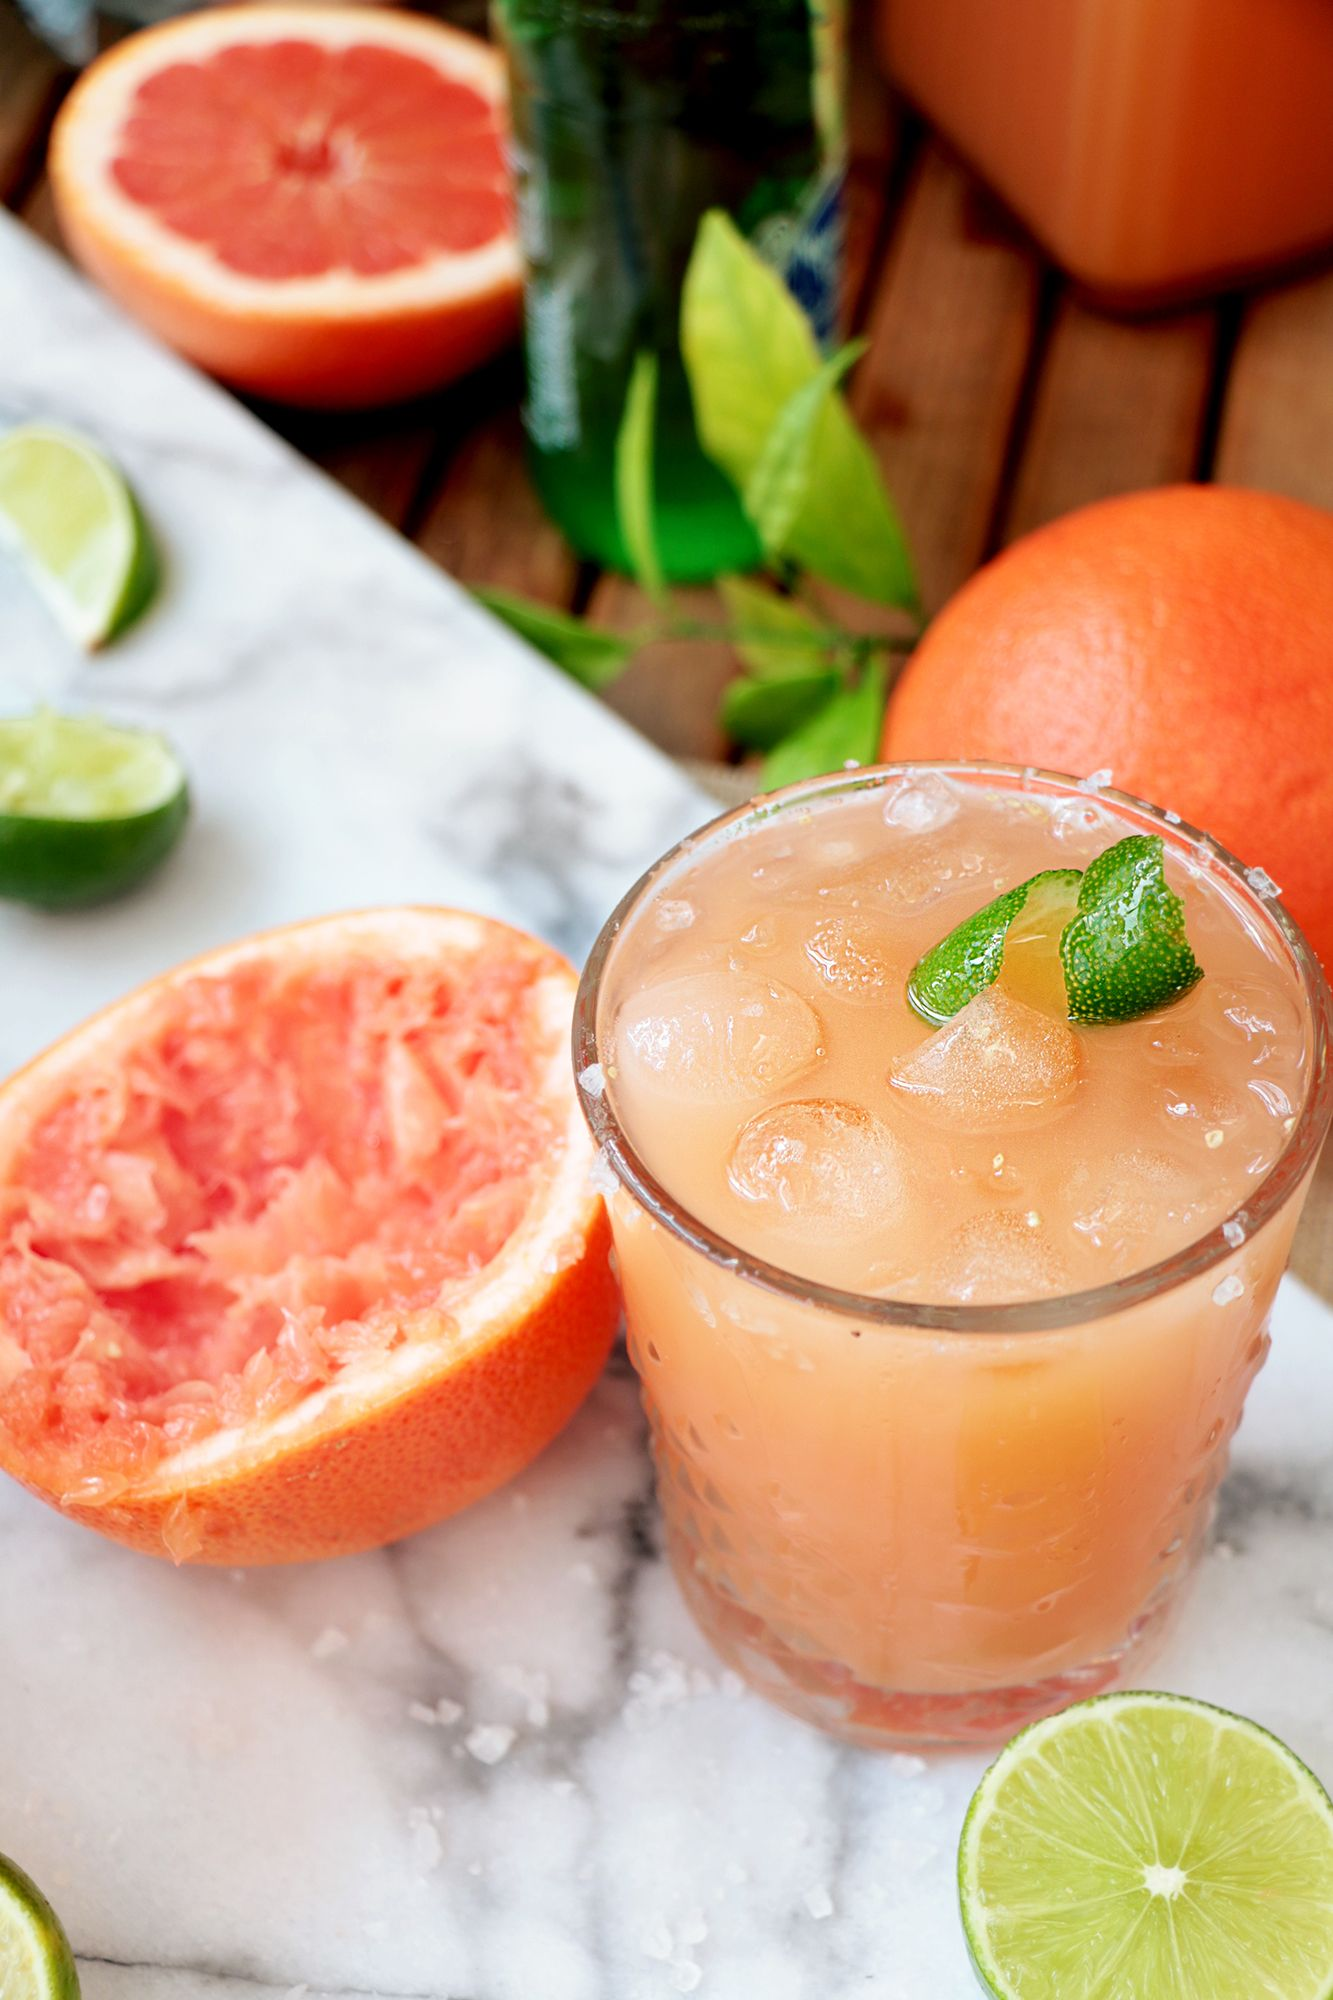 Unwind and sip on this refreshing grapefruit cocktail ...